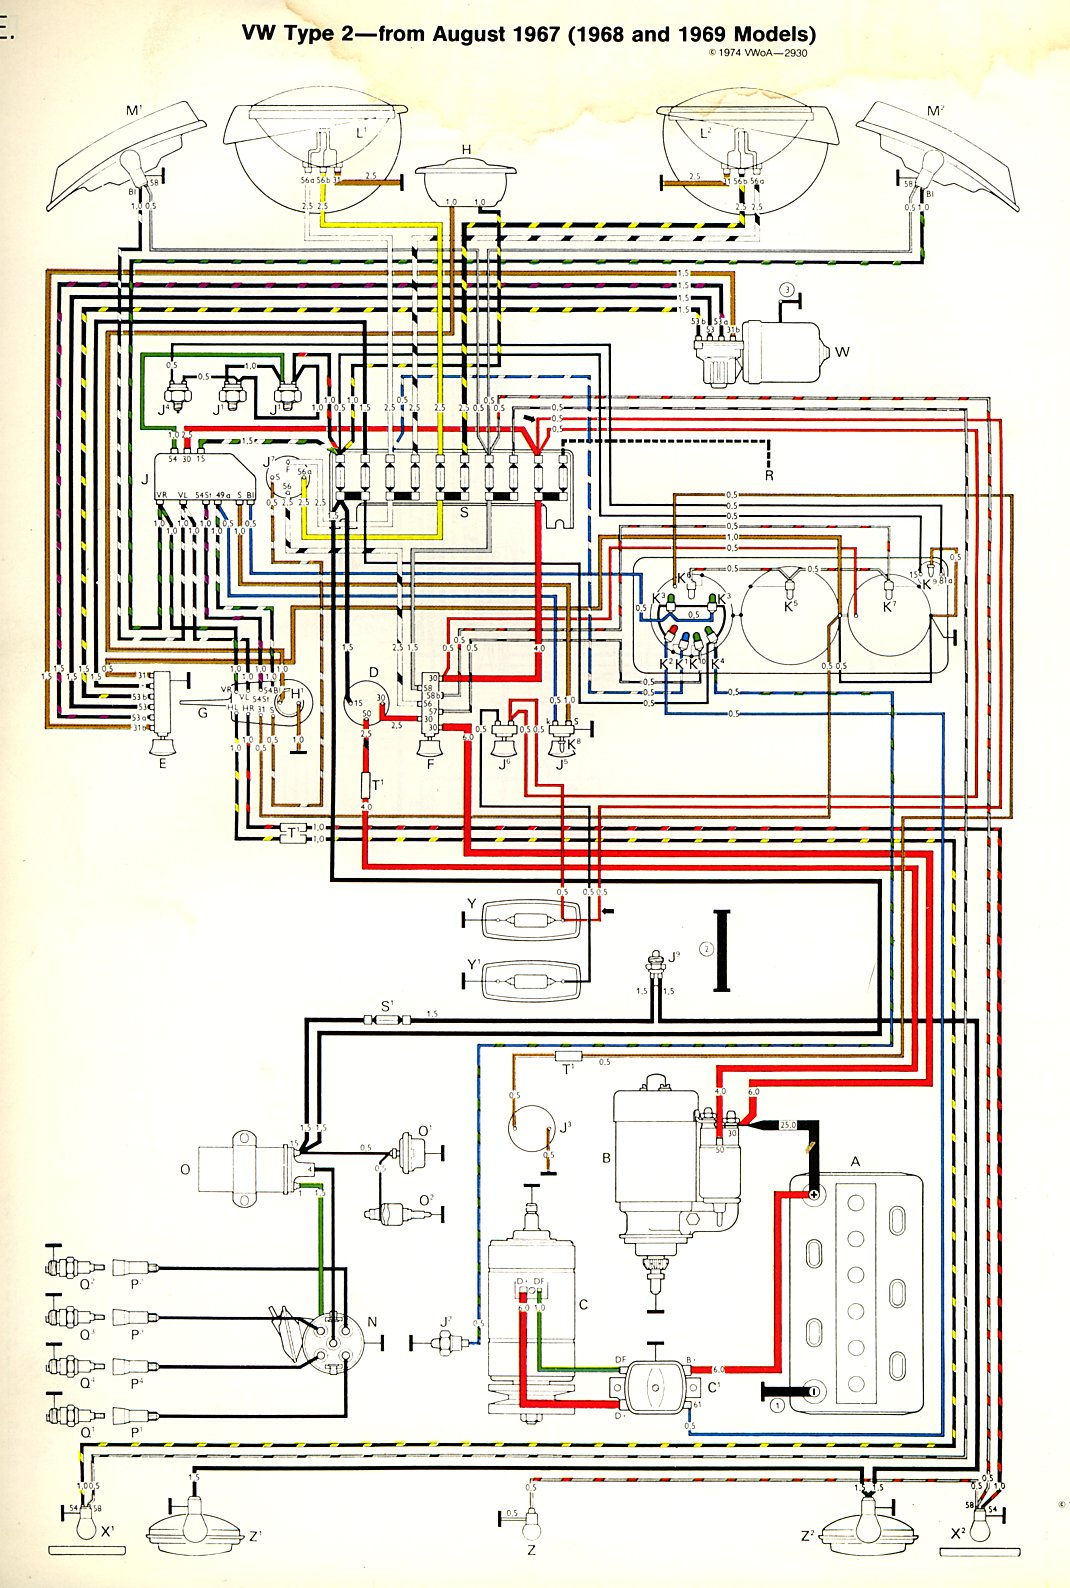 Type 2 Wiring Diagrams Troubleshooting Basic Electrical Circuit System Saturn